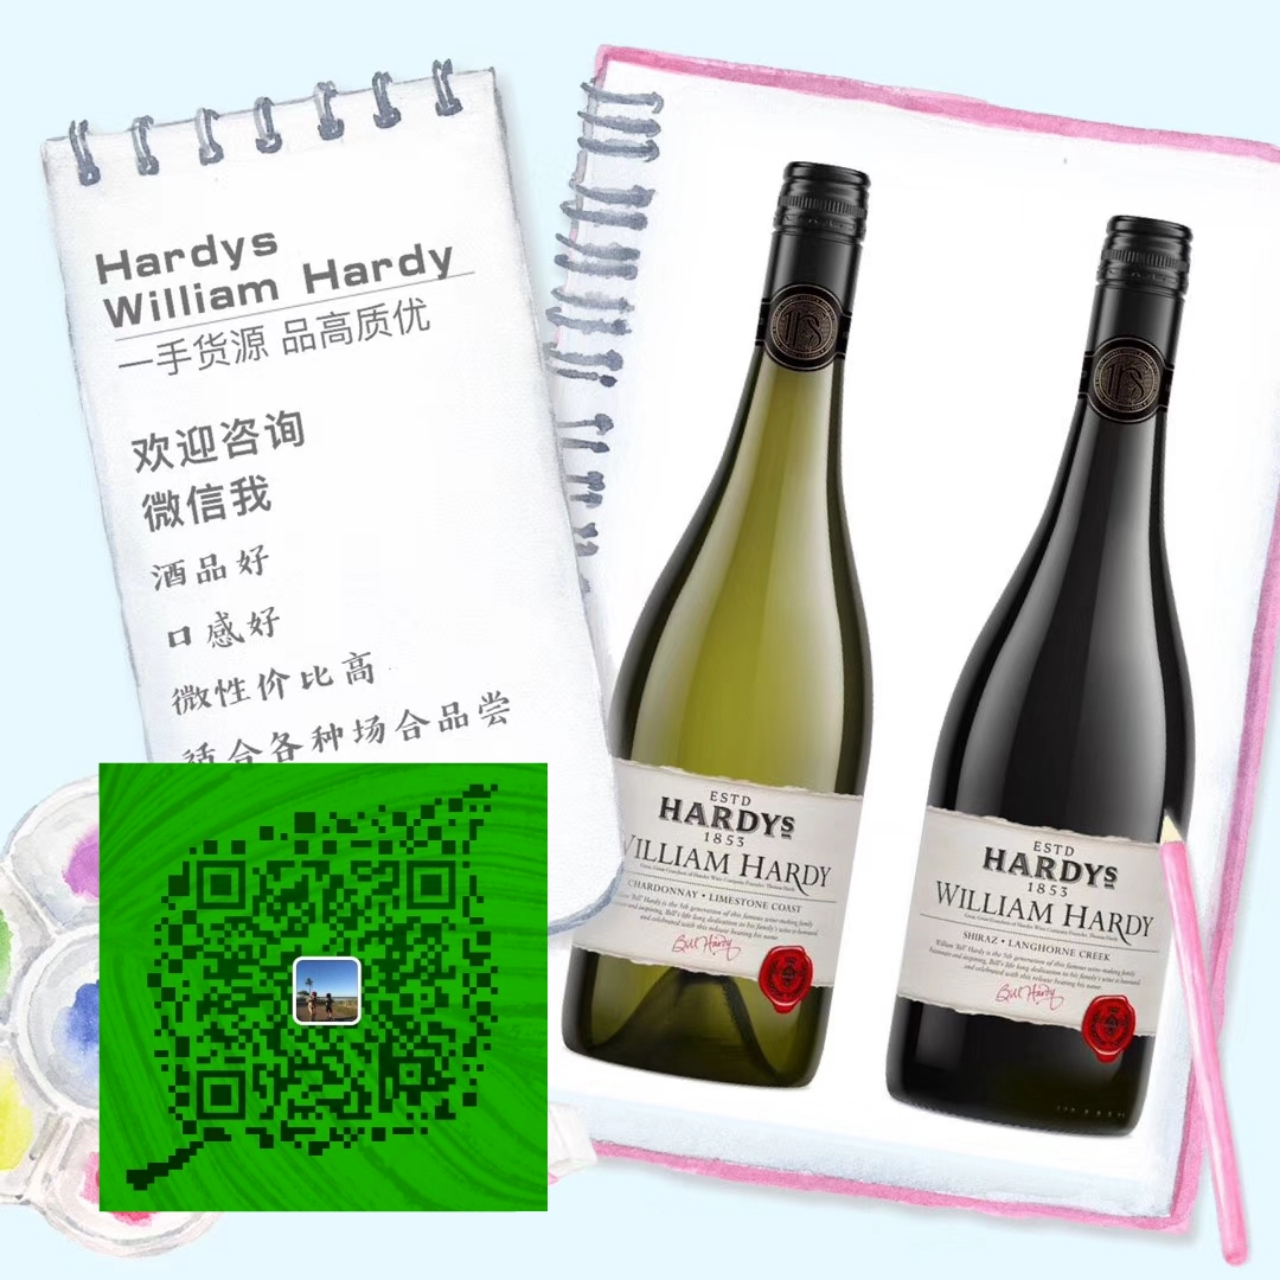 HARDYS WILLIAM夏迪威廉霞多丽白葡萄酒招代理